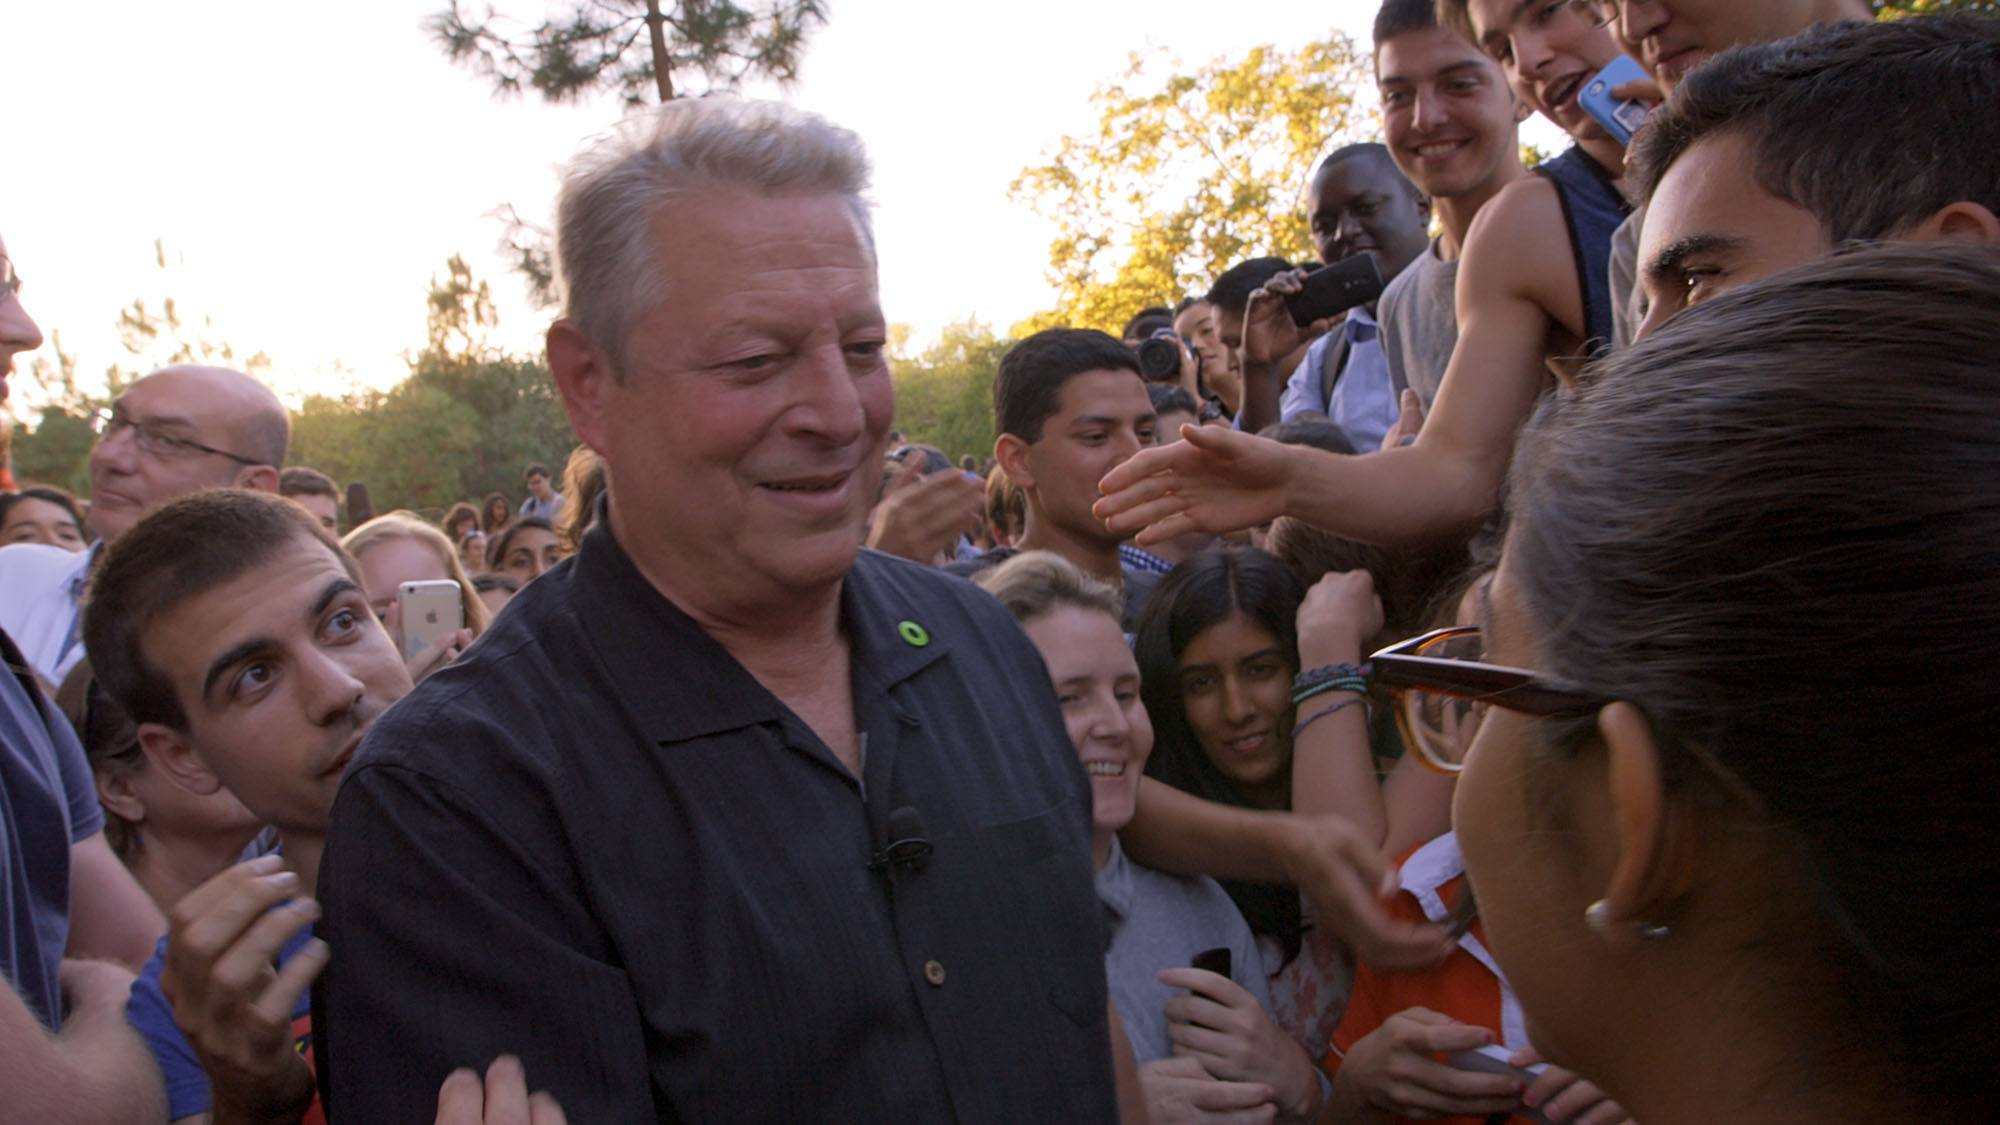 Al Gore attending an environmental rally at Stanford University in An Inconvenient Sequel: Truth To Power (Paramount Pictures and Participant Media)